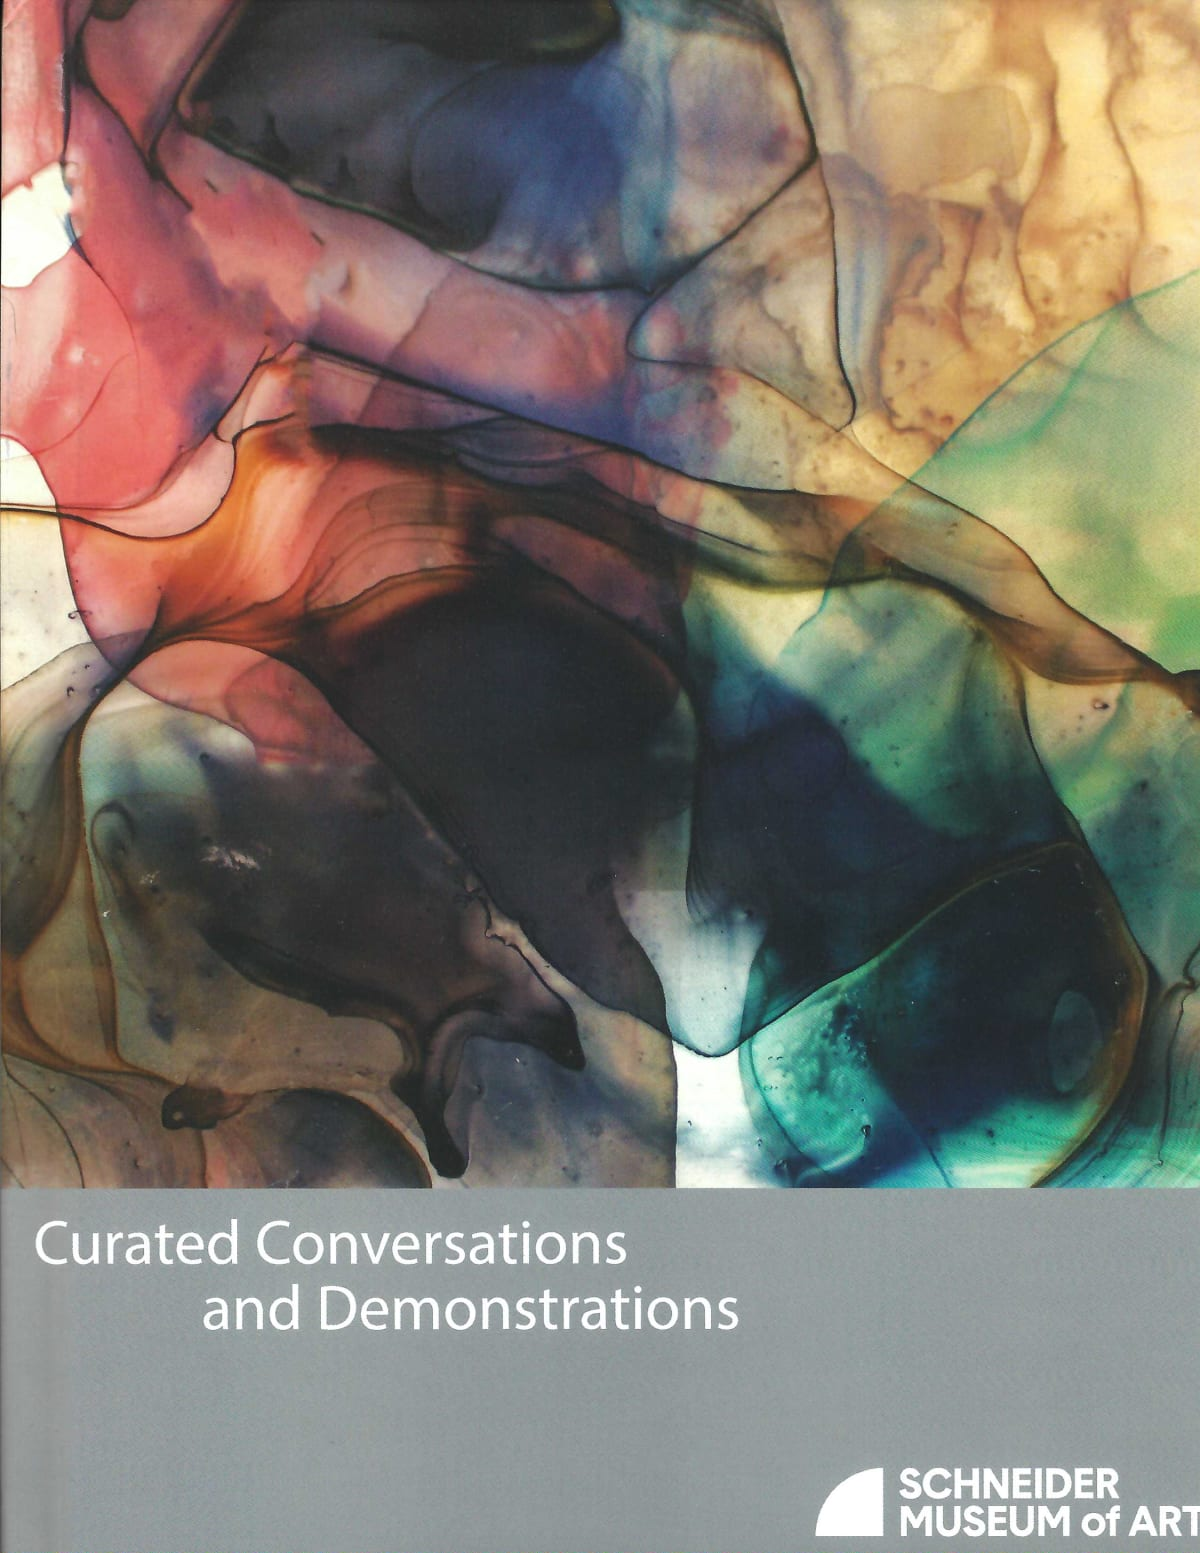 Curated Conversations and Demonstrations